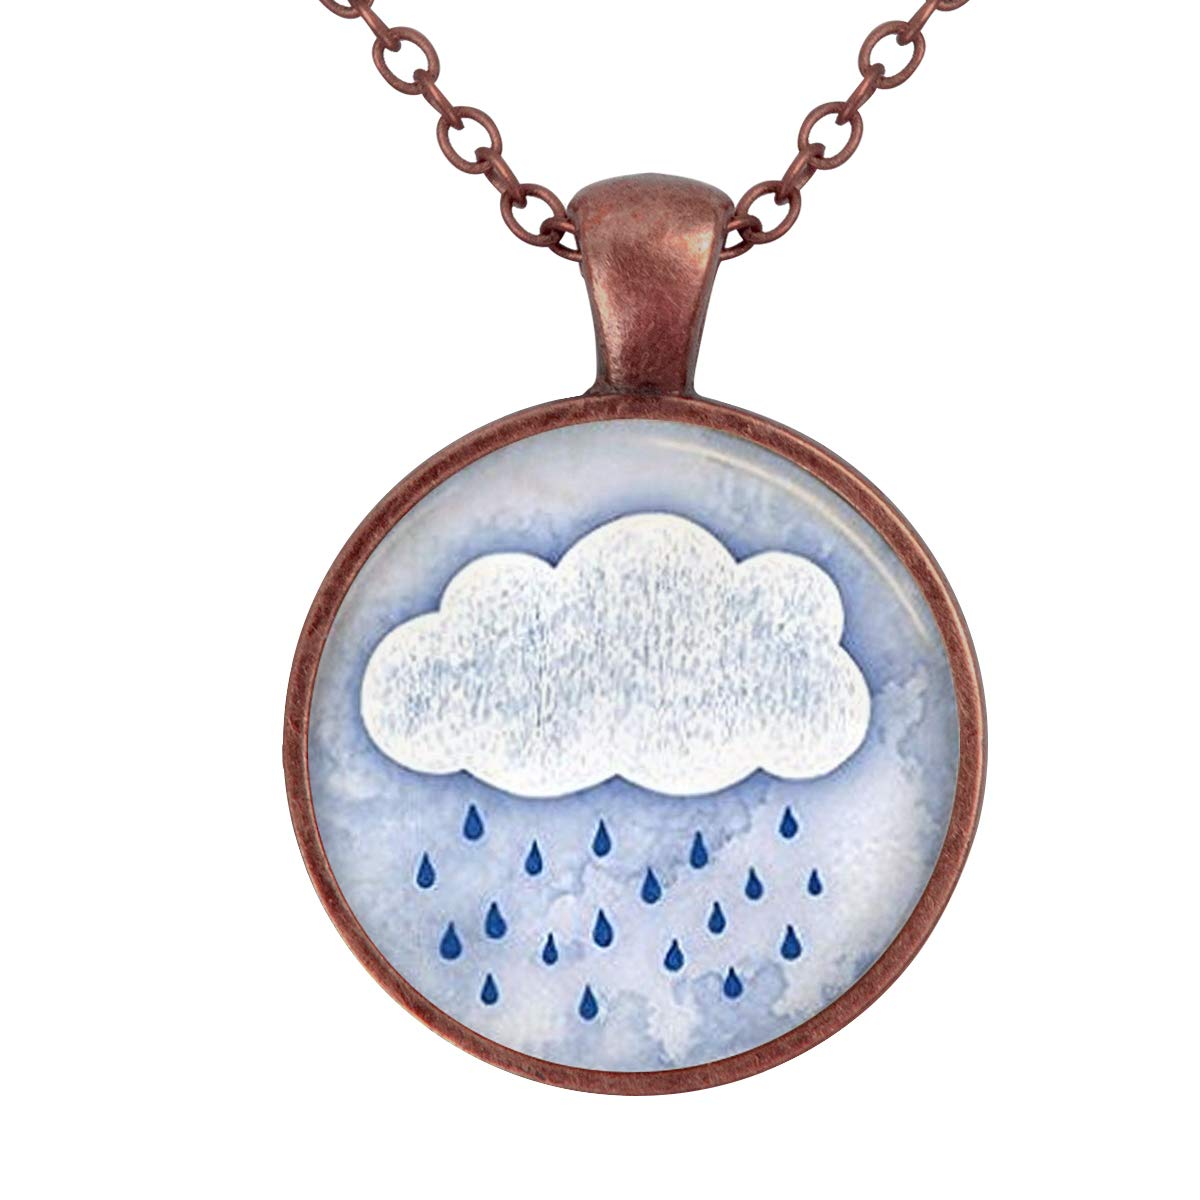 Lightrain Rain Cloud Rainy Day Pendant Spring Showers Weather Art Pendant Necklace Vintage Bronze Chain Statement Necklace Handmade Jewelry Gifts